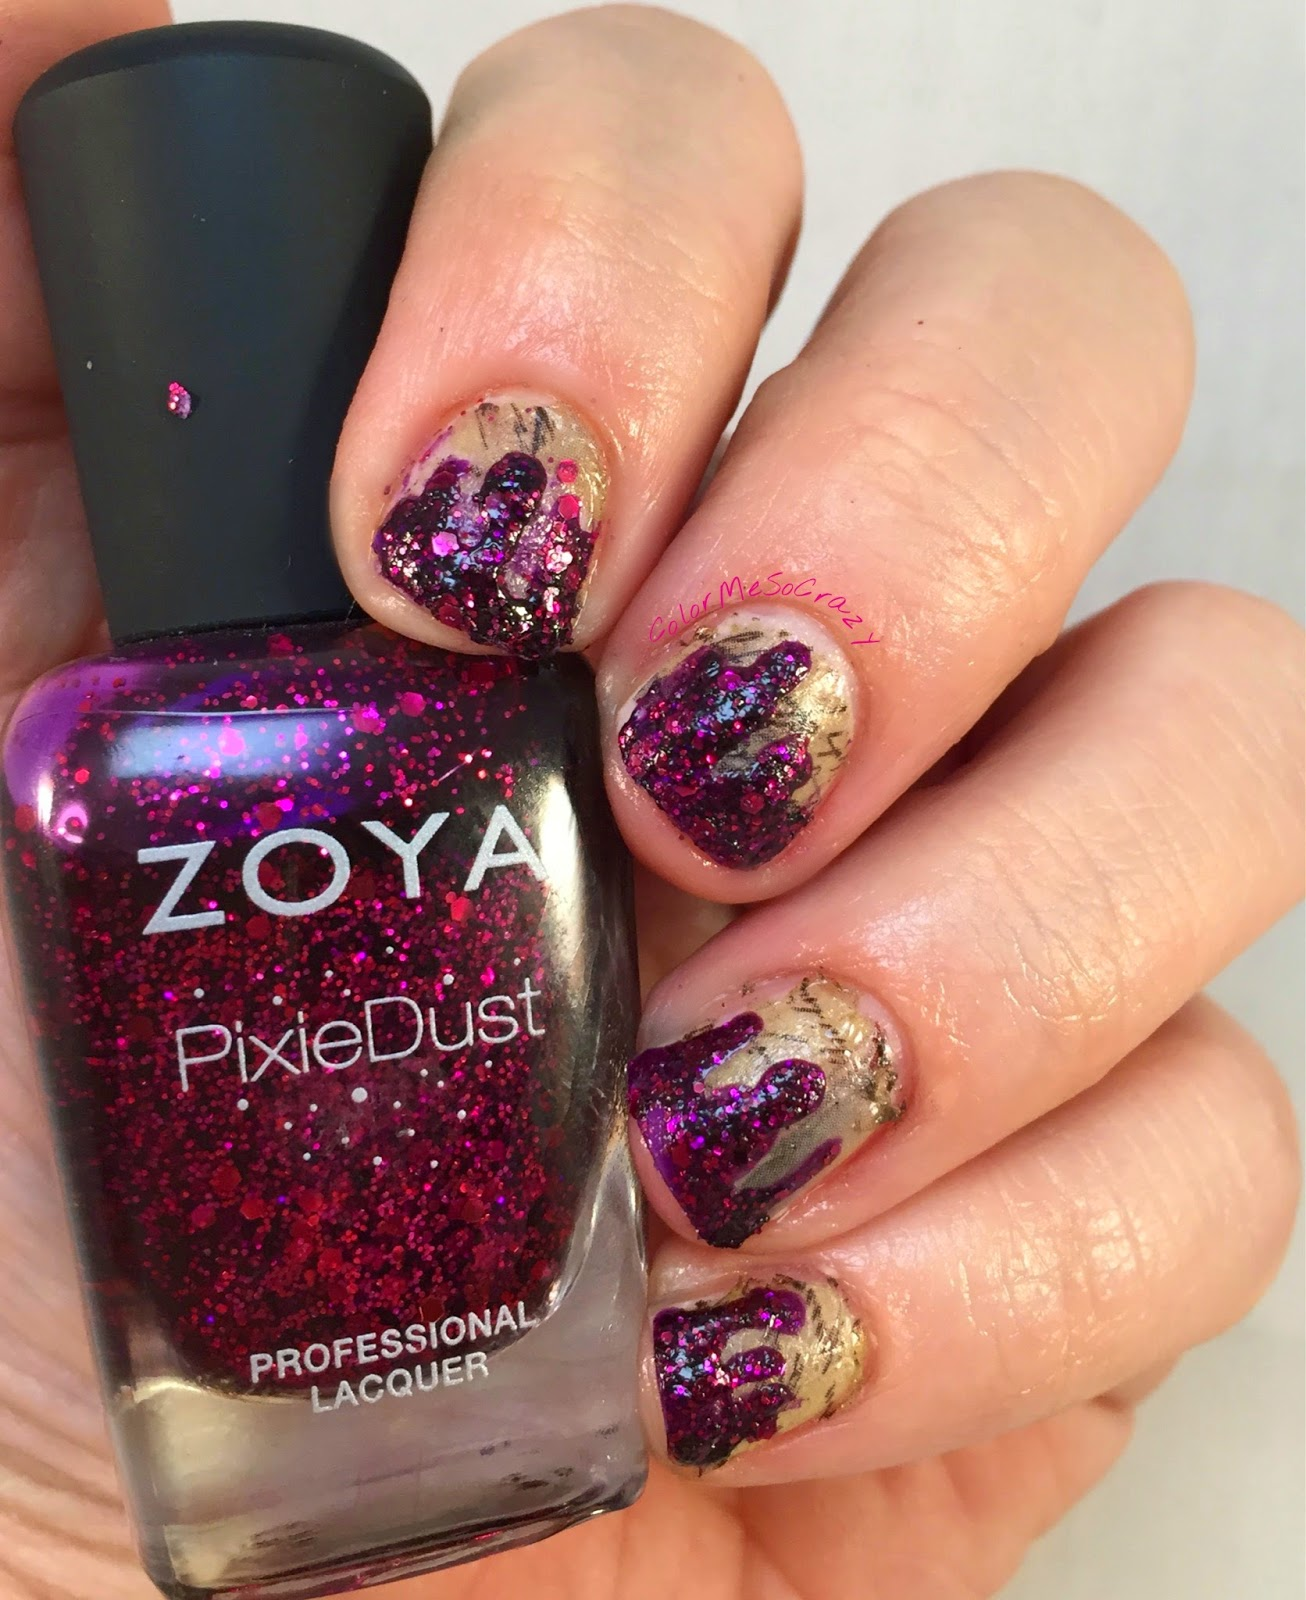 Red Coat Tuesday using Zoya, Episode 18 season 5 recap